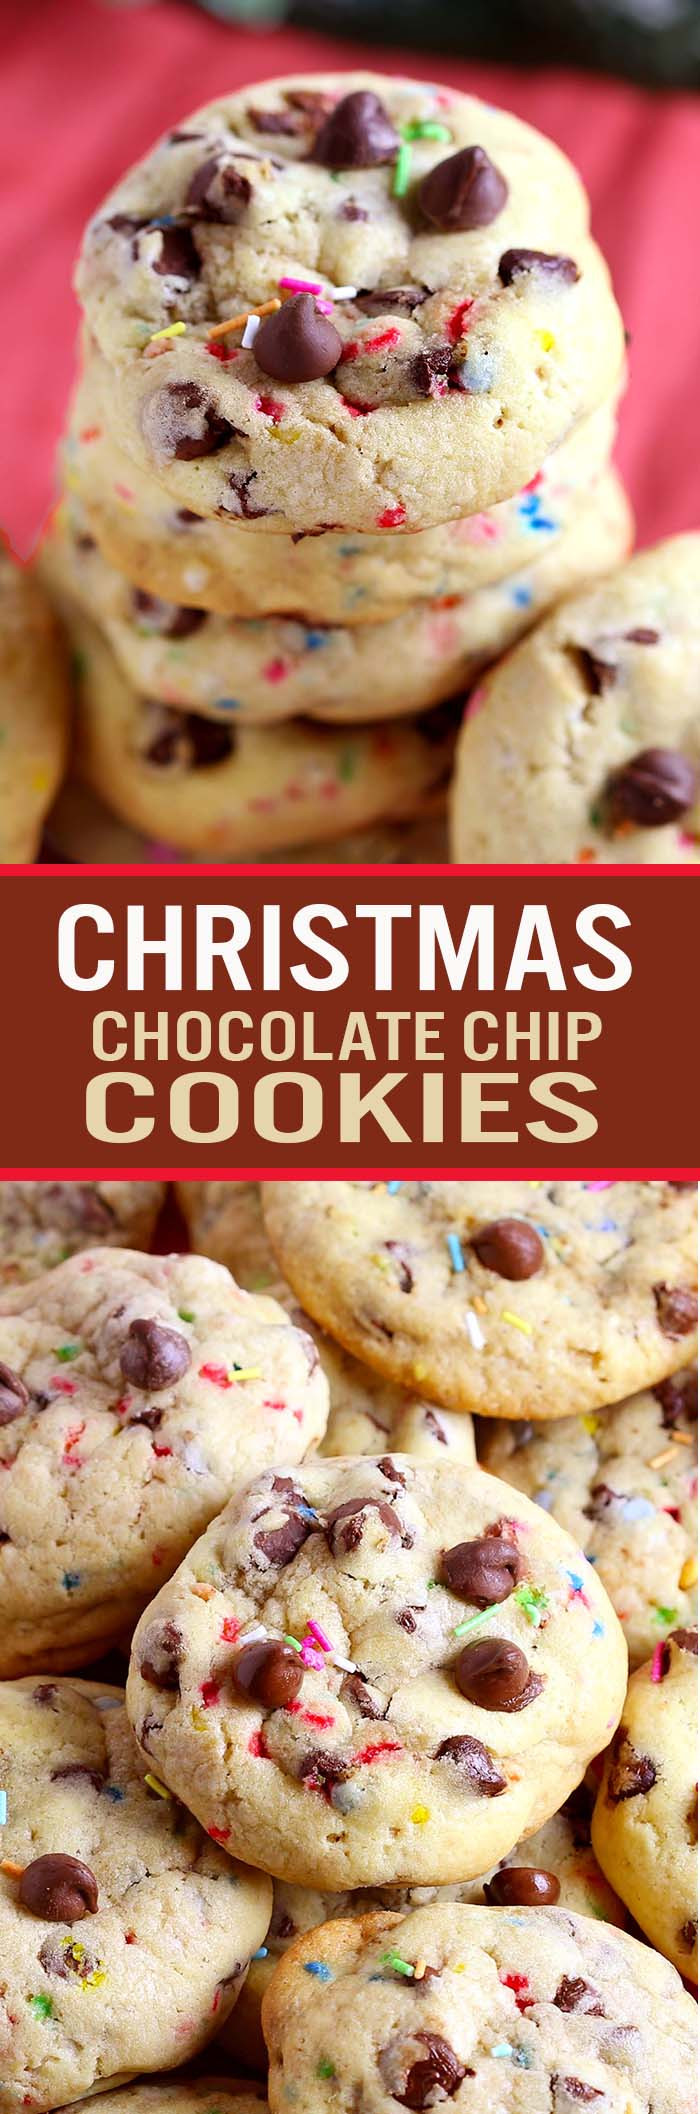 Christmas Choc Chip Cookies  Christmas Chocolate Chip Cookies Cakescottage